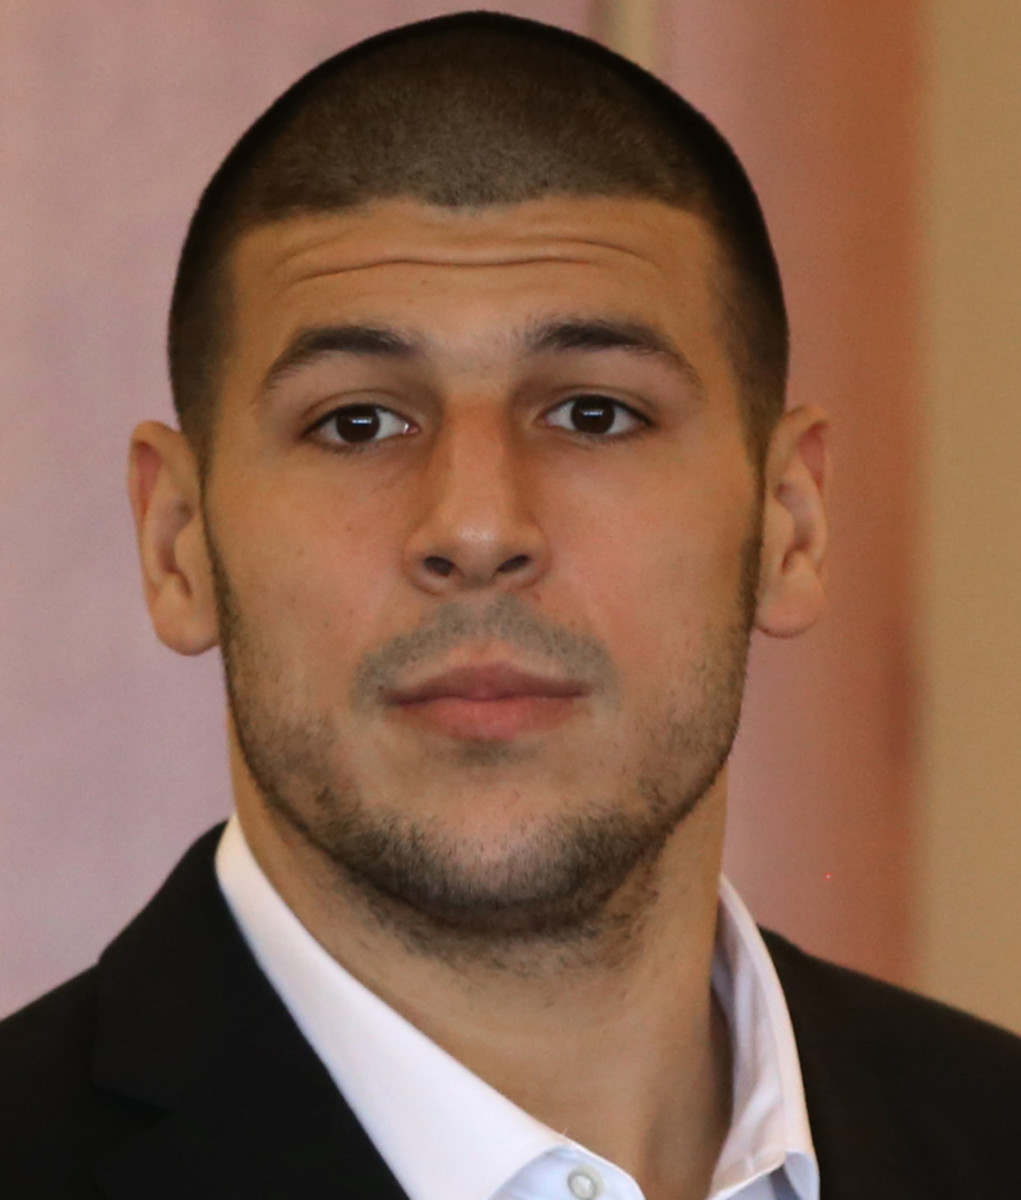 How tall is Aaron Hernandez?